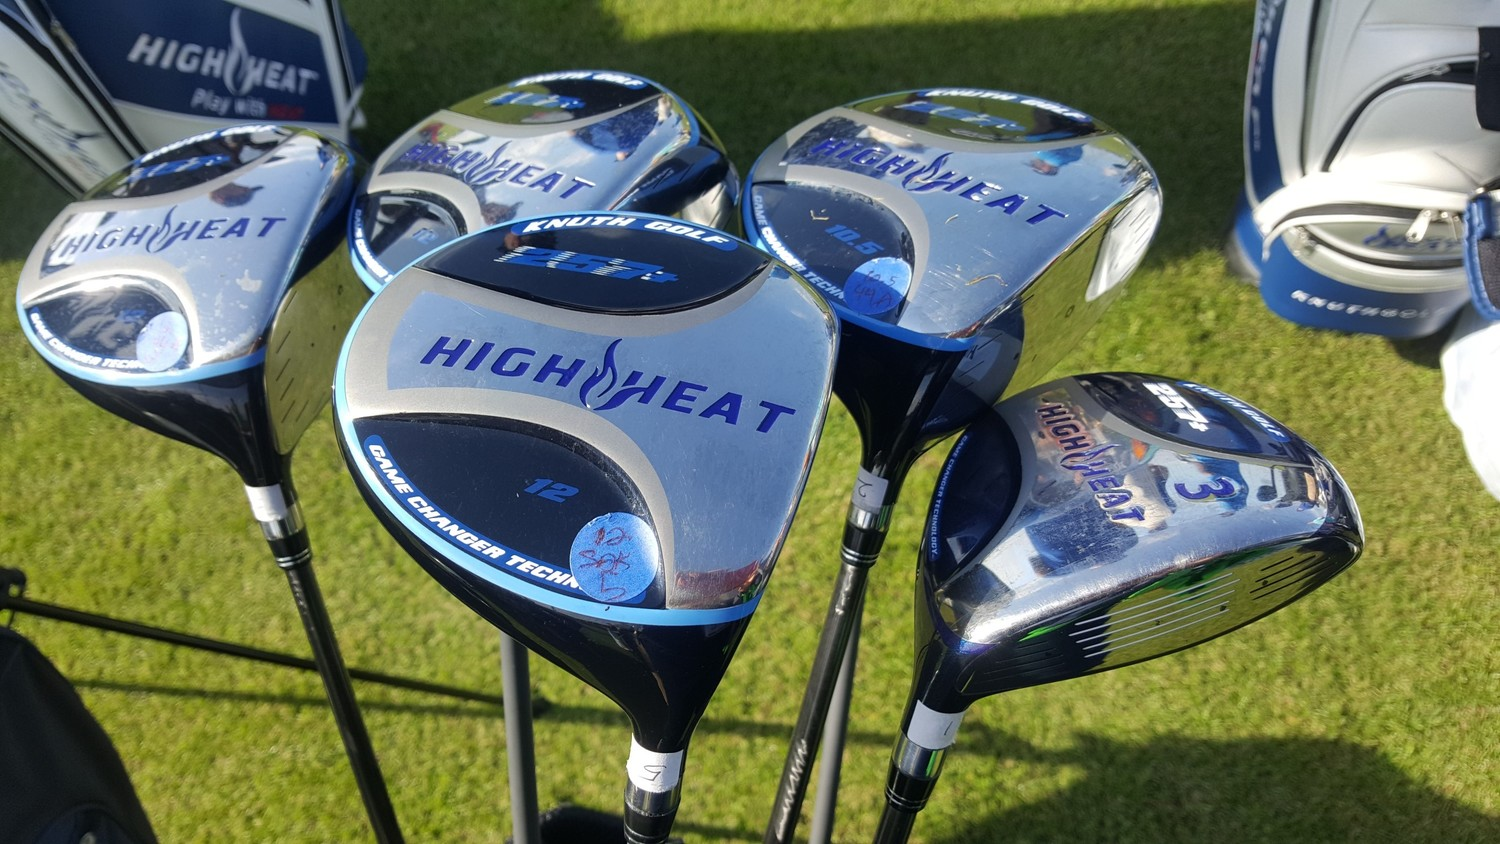 High Heat 257+ is a new innovation in clubface design.